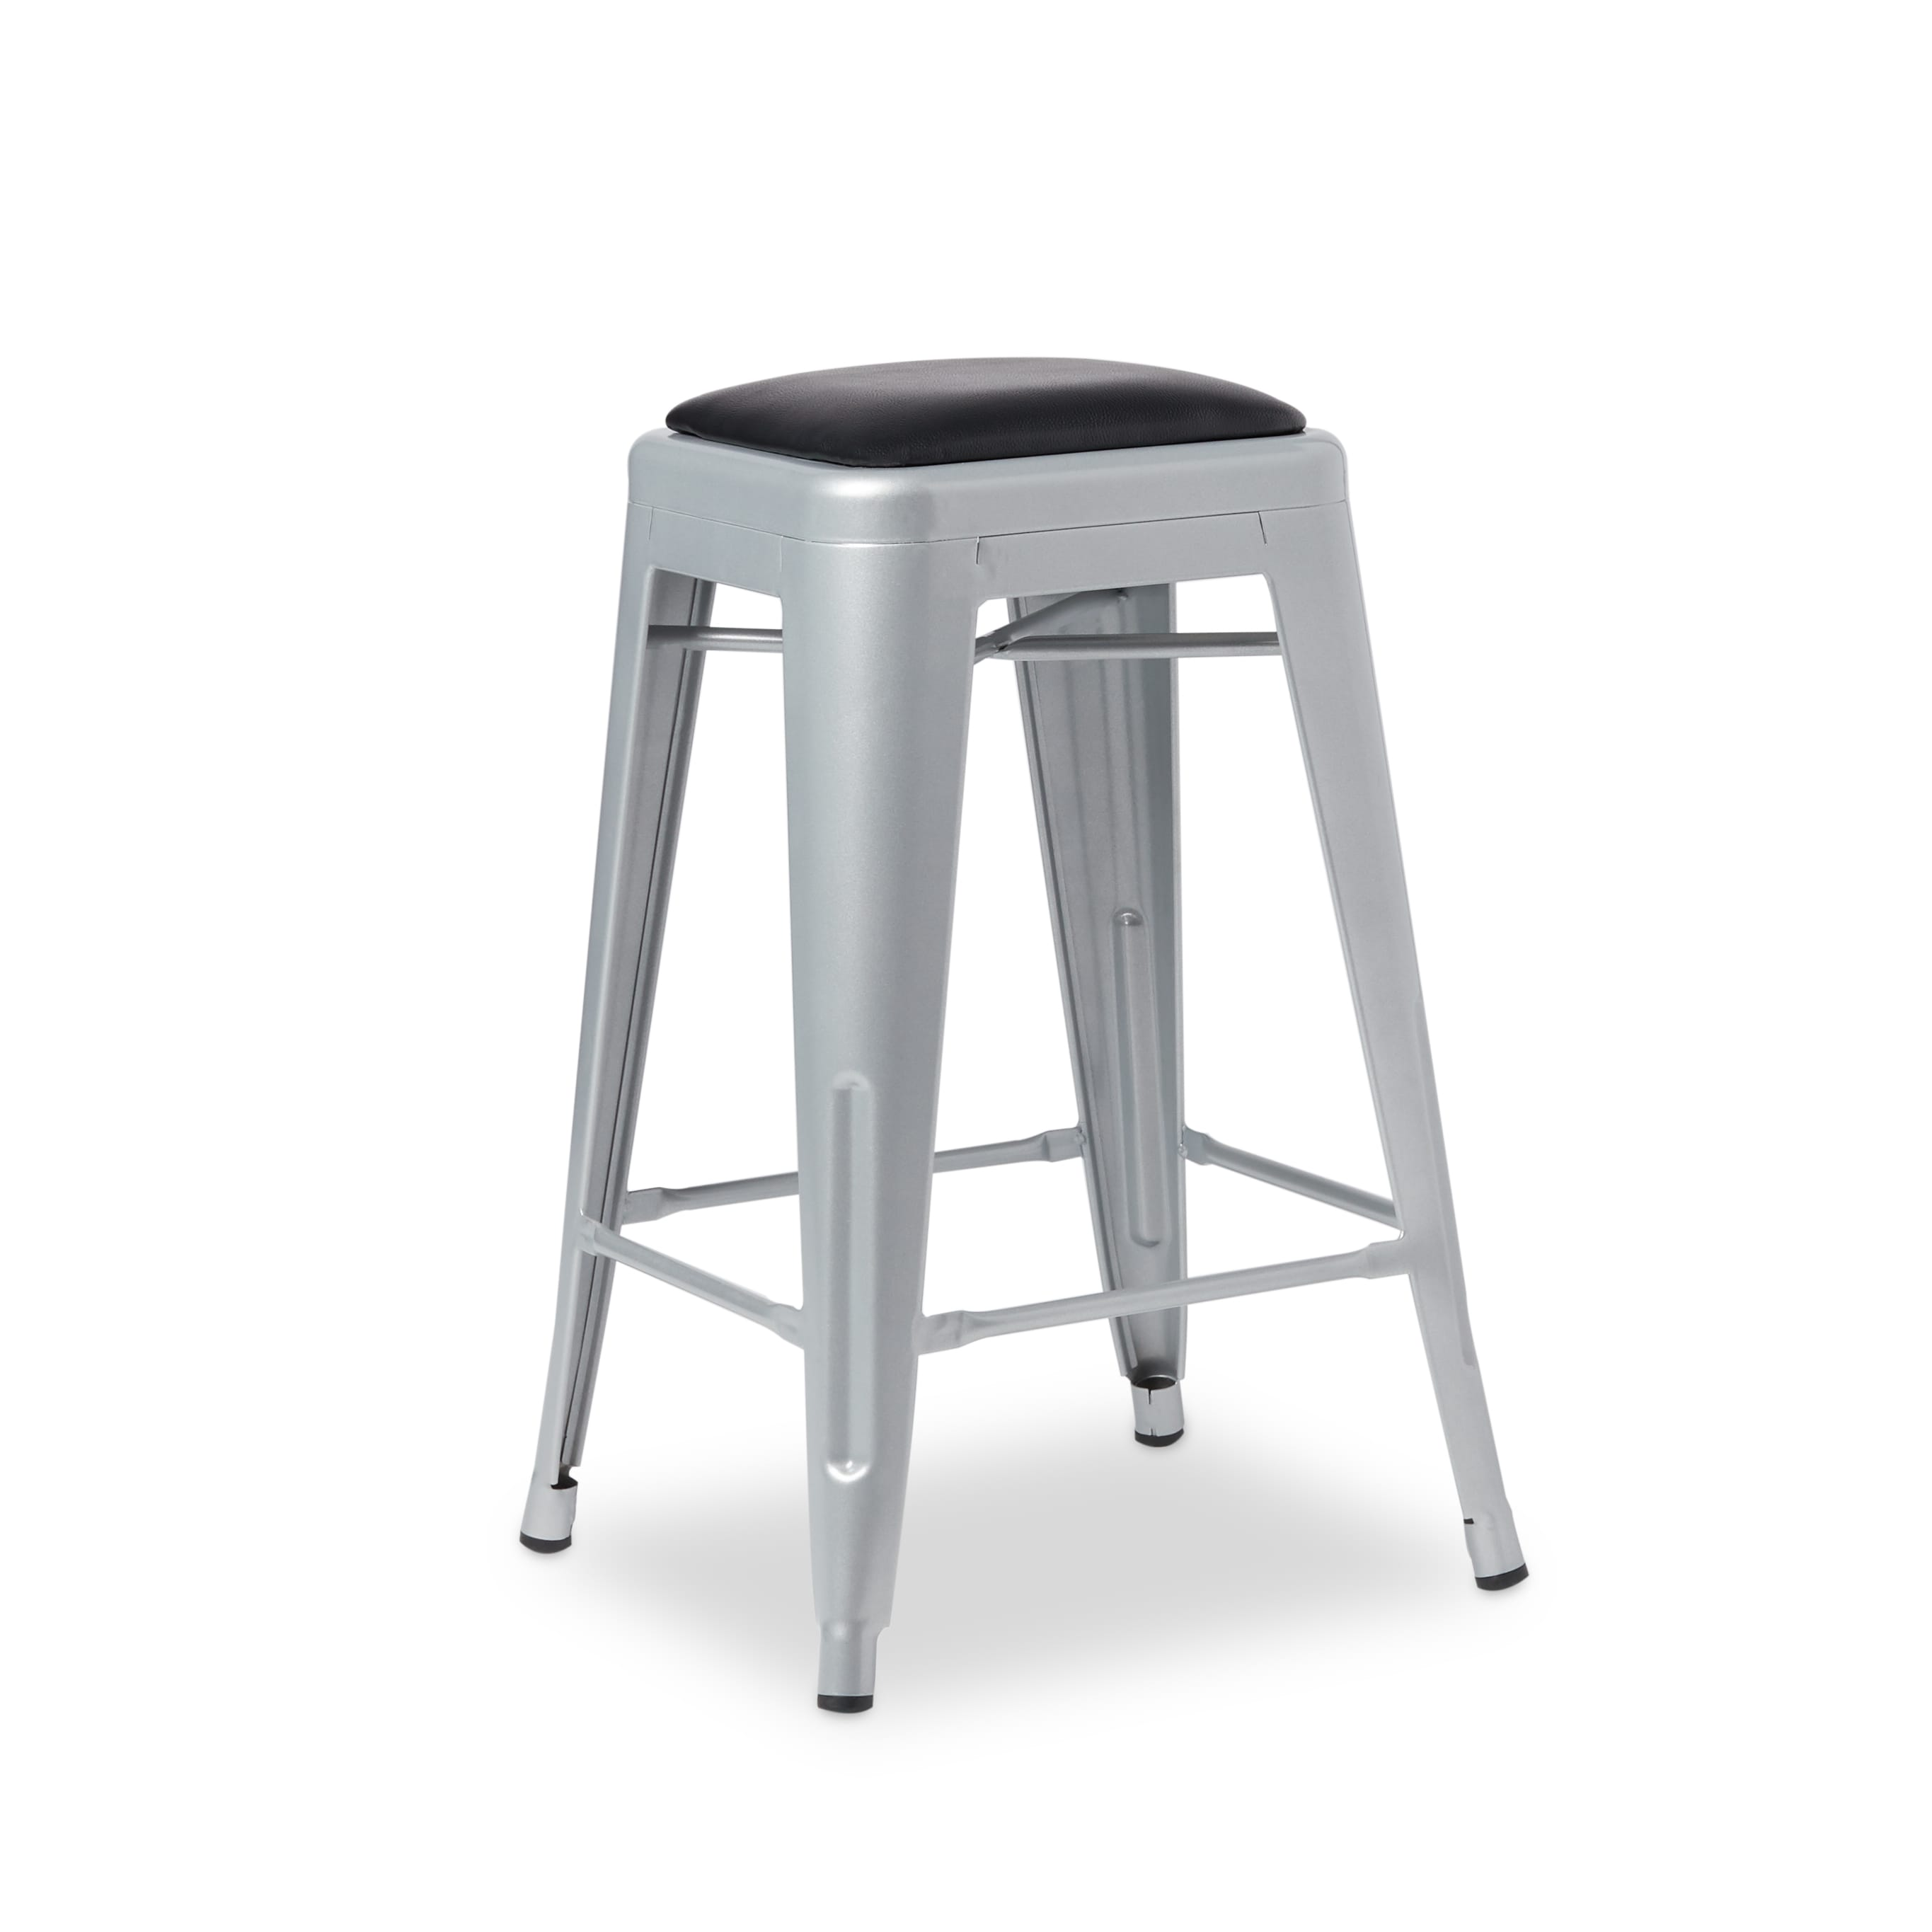 a high by en metal b bar from sayo say architonic product tbg stools barstool o stool